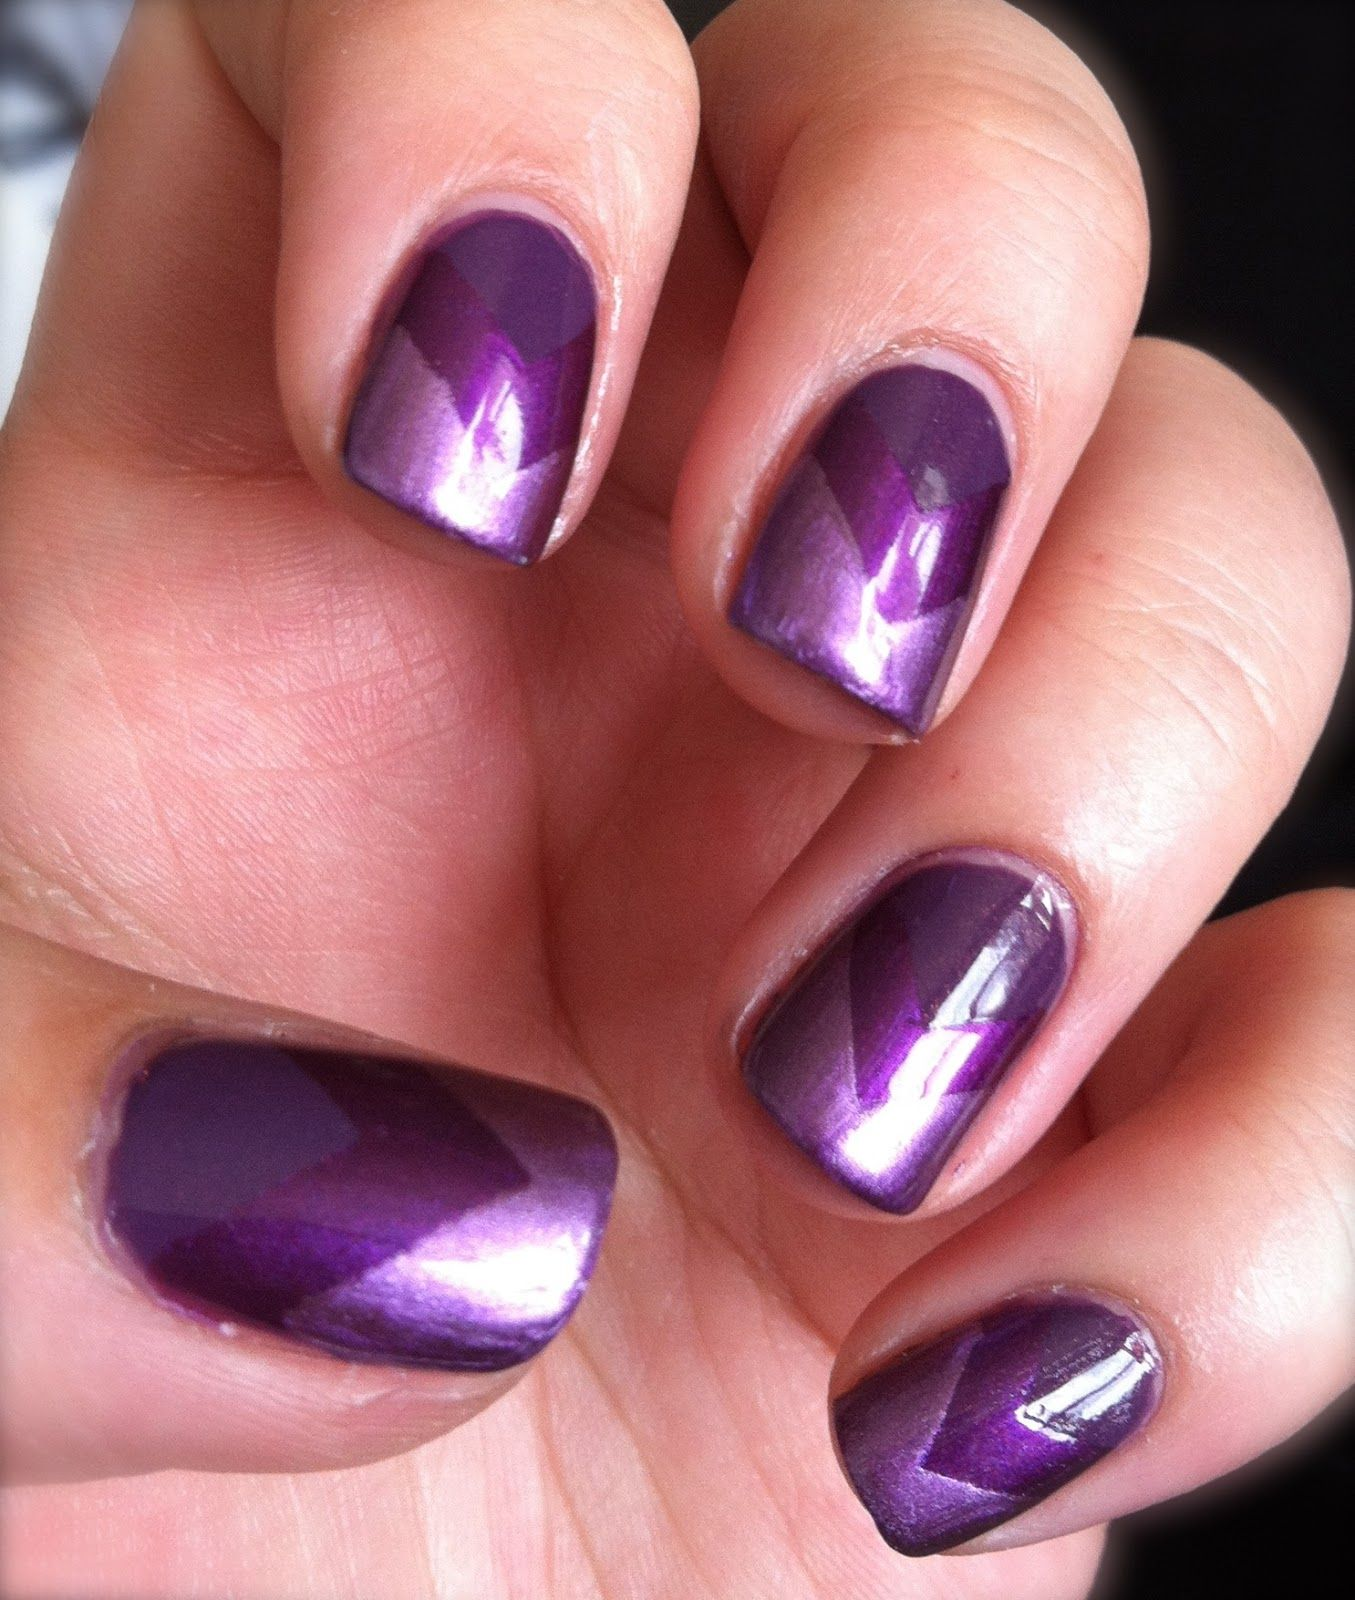 Nail art 2014 (With images) Diy beauty nails, Purple